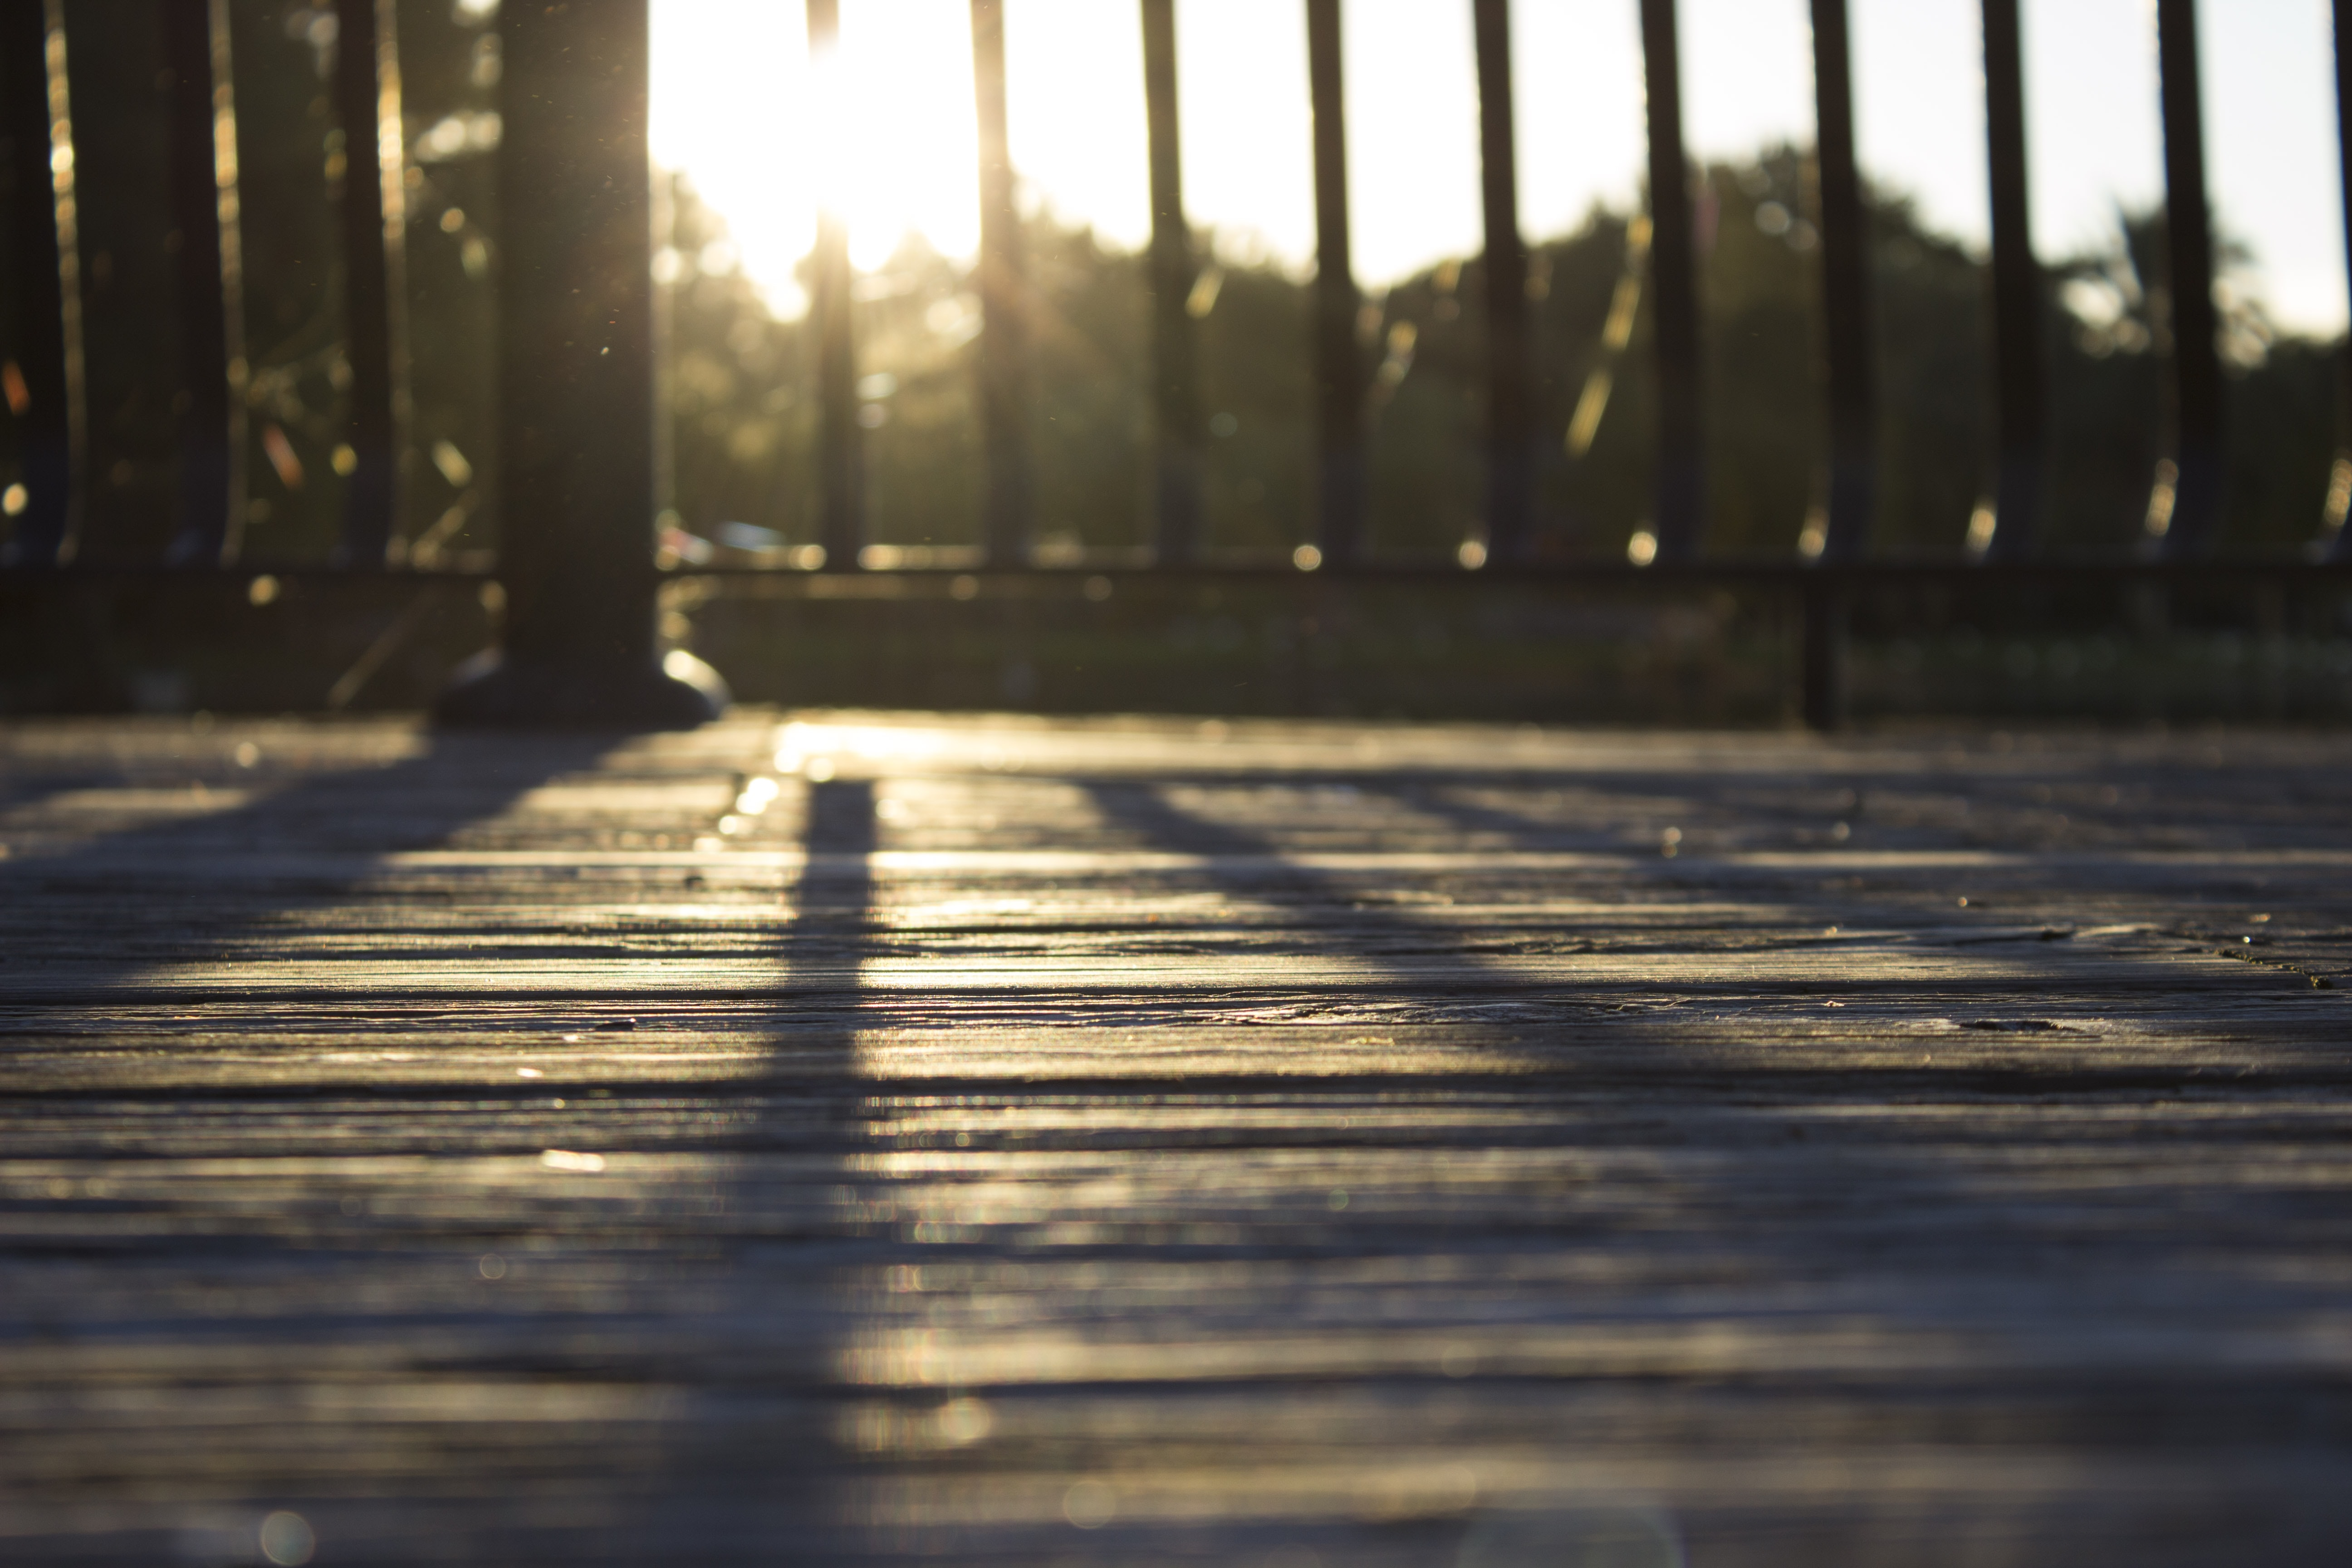 Sunlight creating shadows through a wooden fence on a deck.